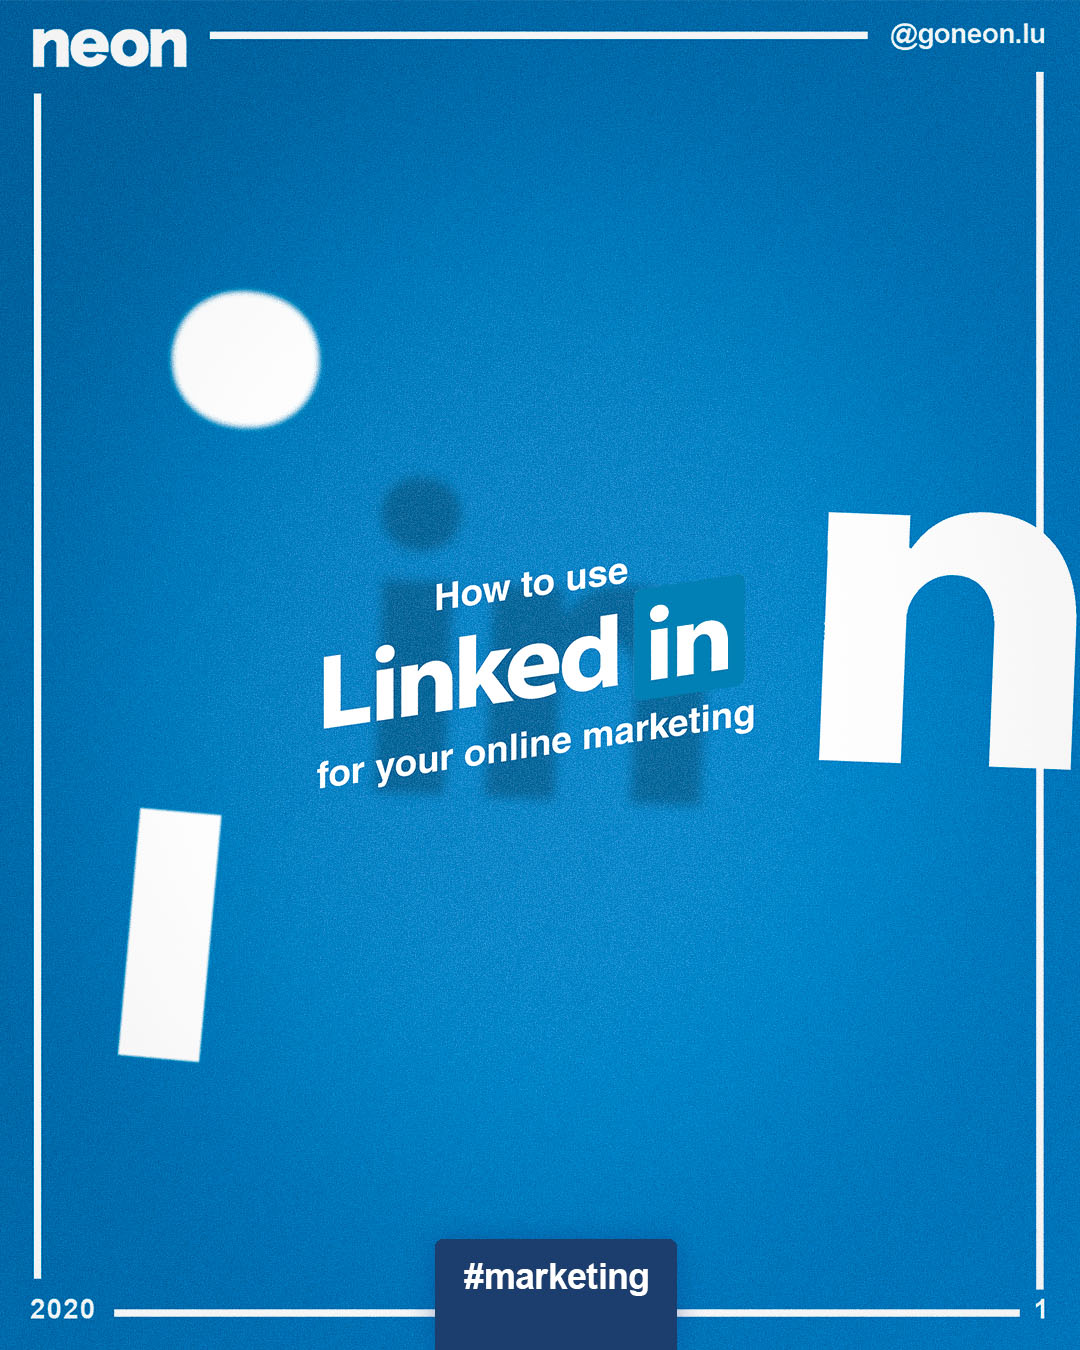 How to use LinkedIn for your online marketing